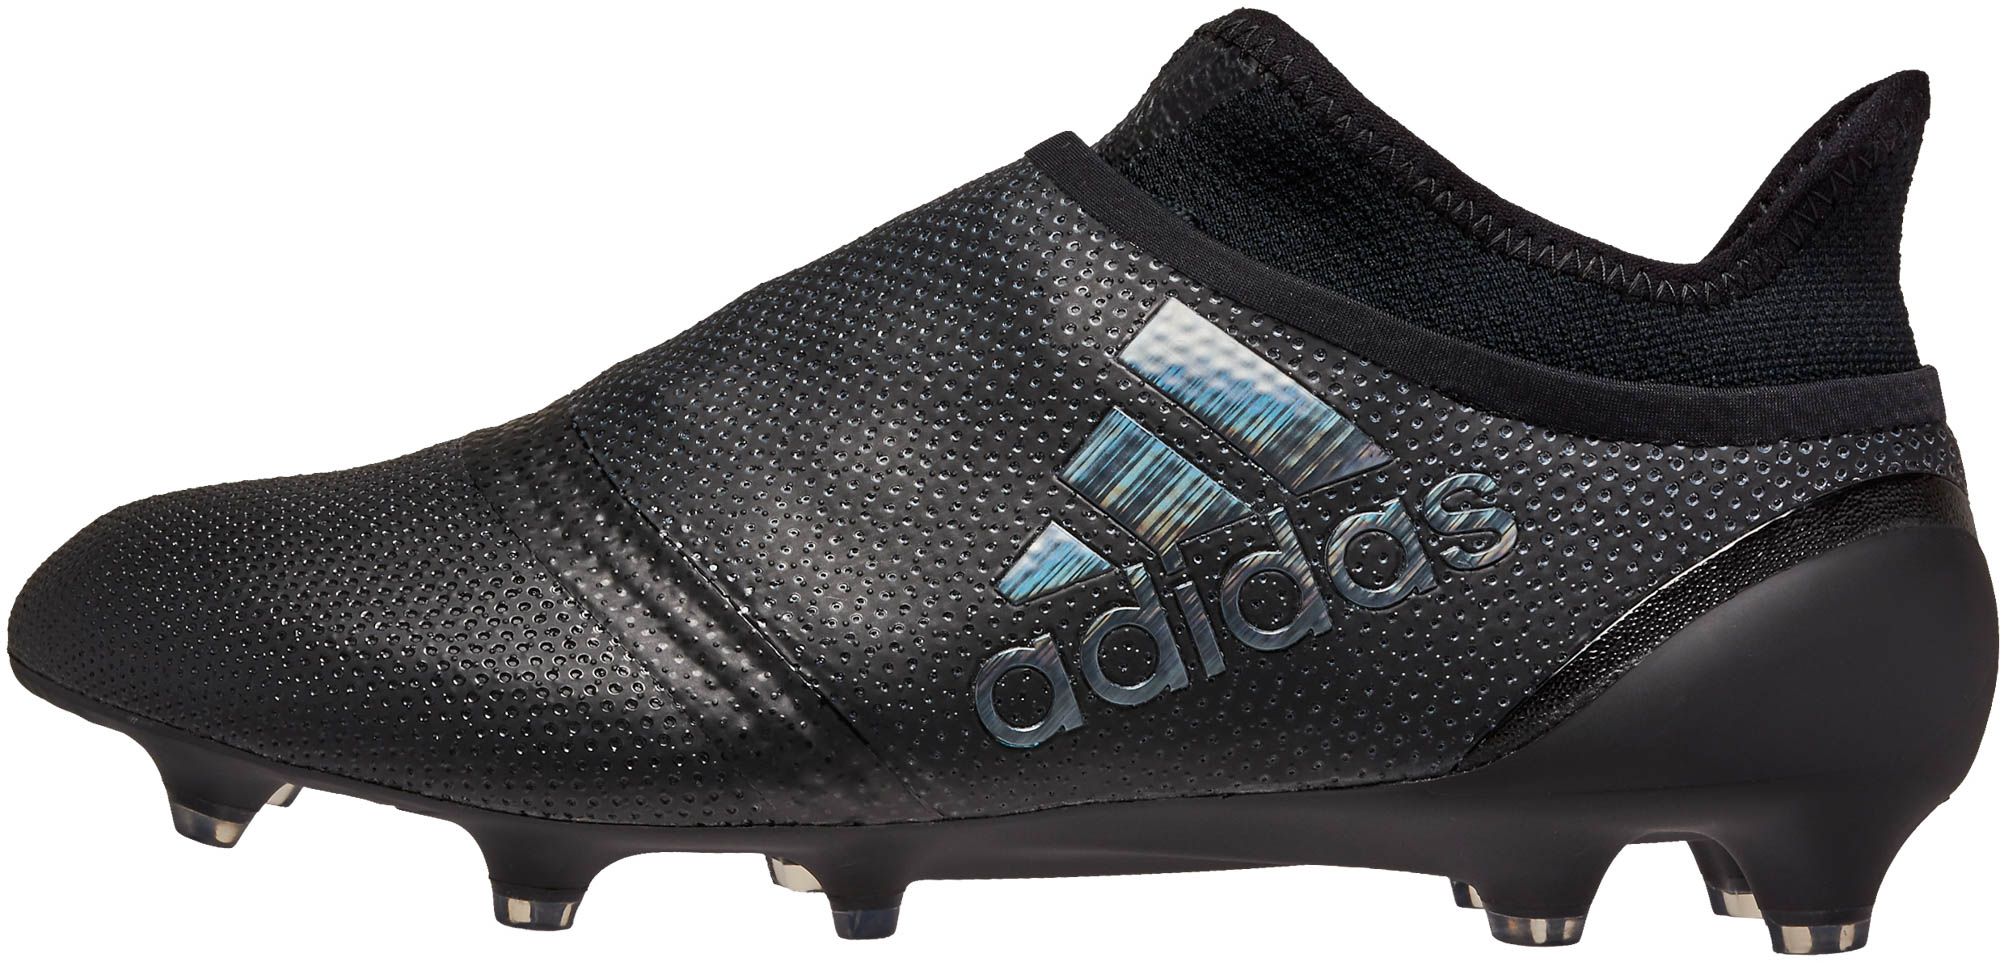 new concept 4b898 05a76 adidas X 17+ Purechaos FG Soccer Cleats - Black - Soccer Master